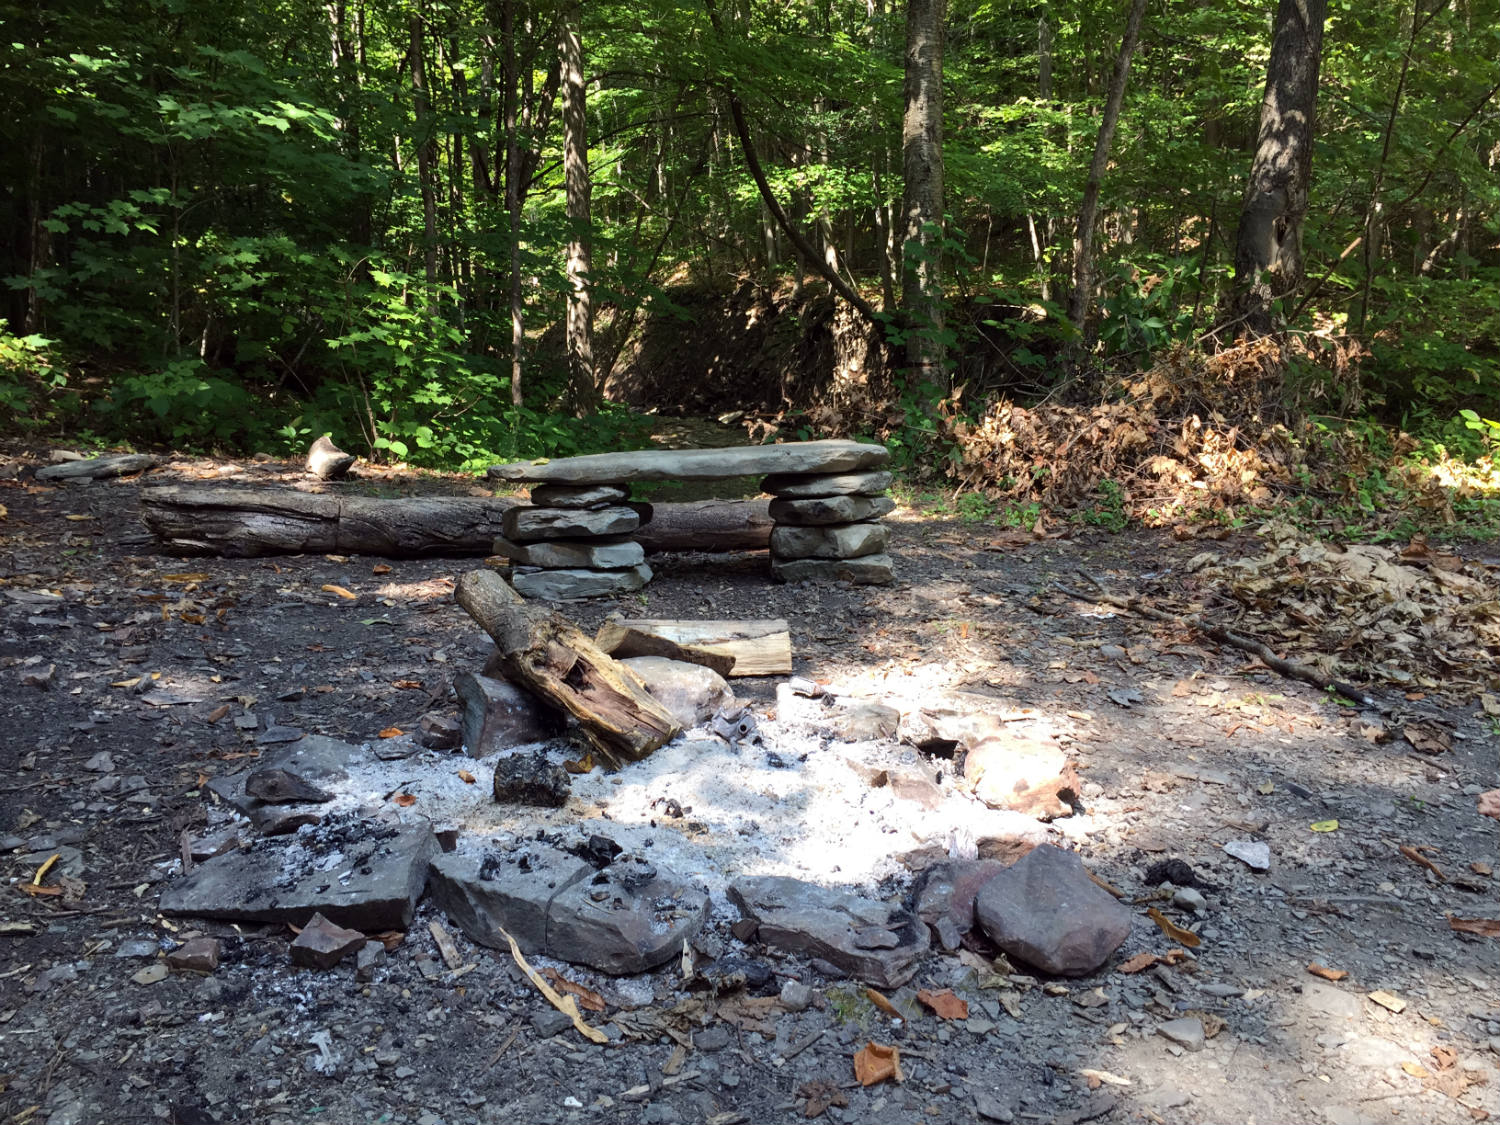 Rock Bench and Campfire on the Trail in Clark Gully